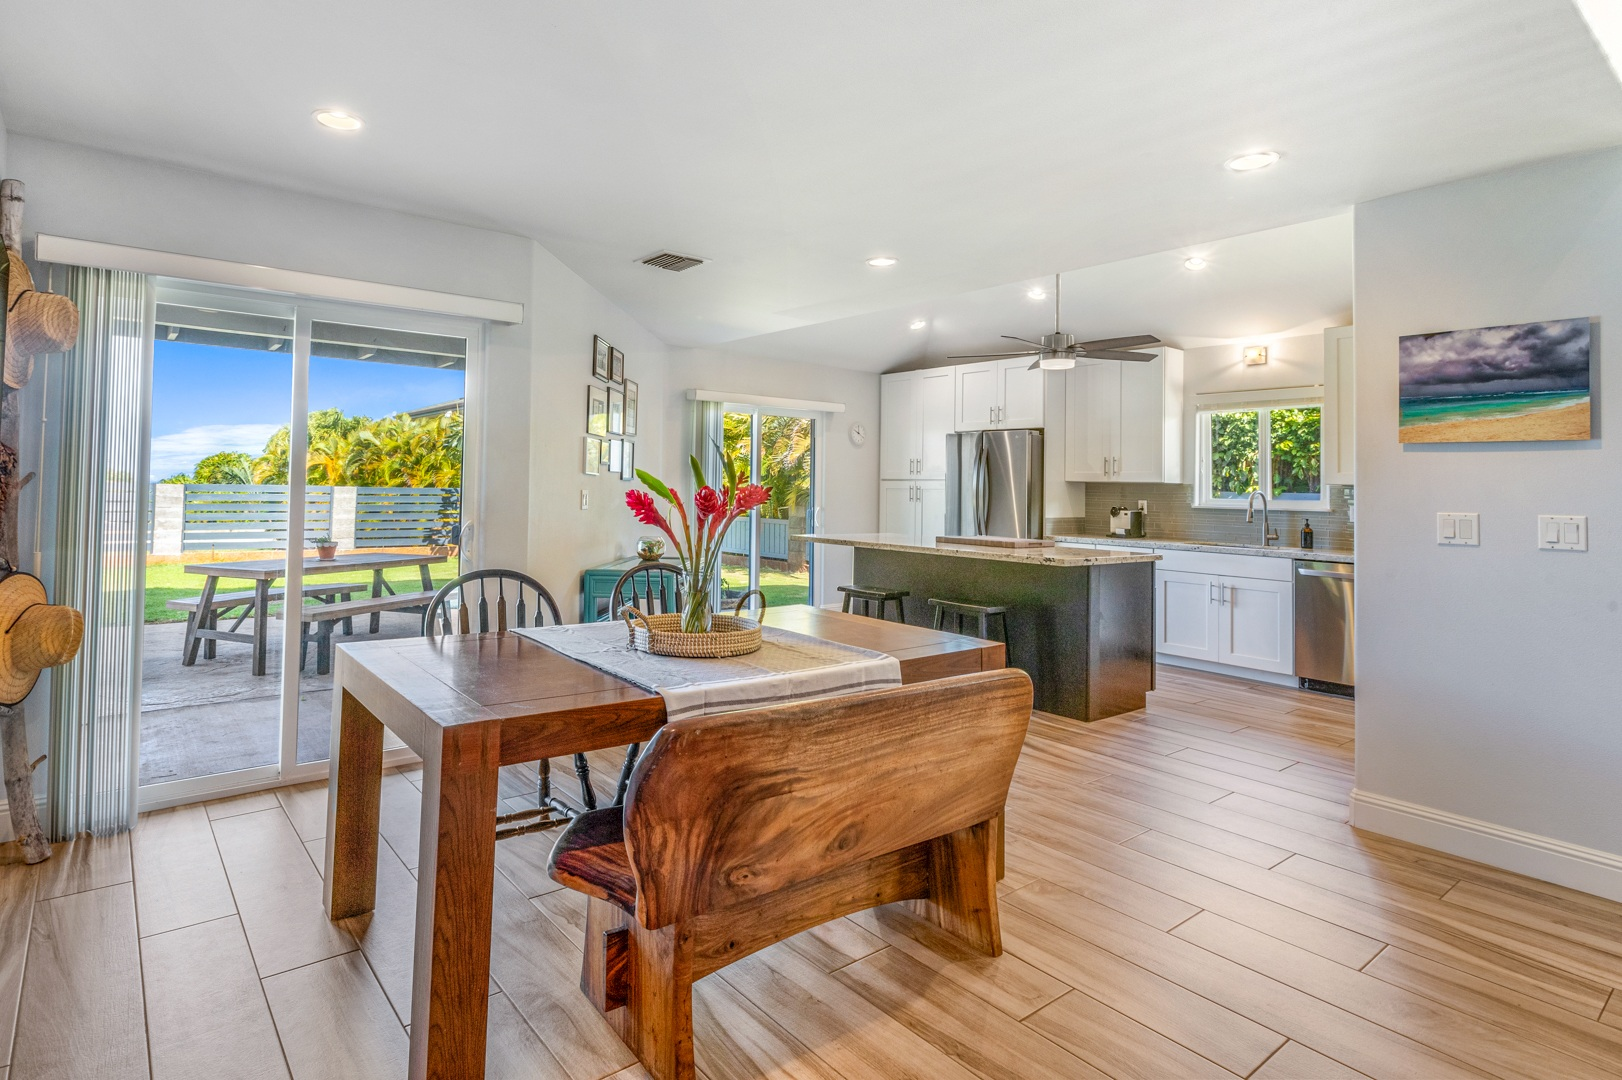 Kitchen area of new listing in West Maui